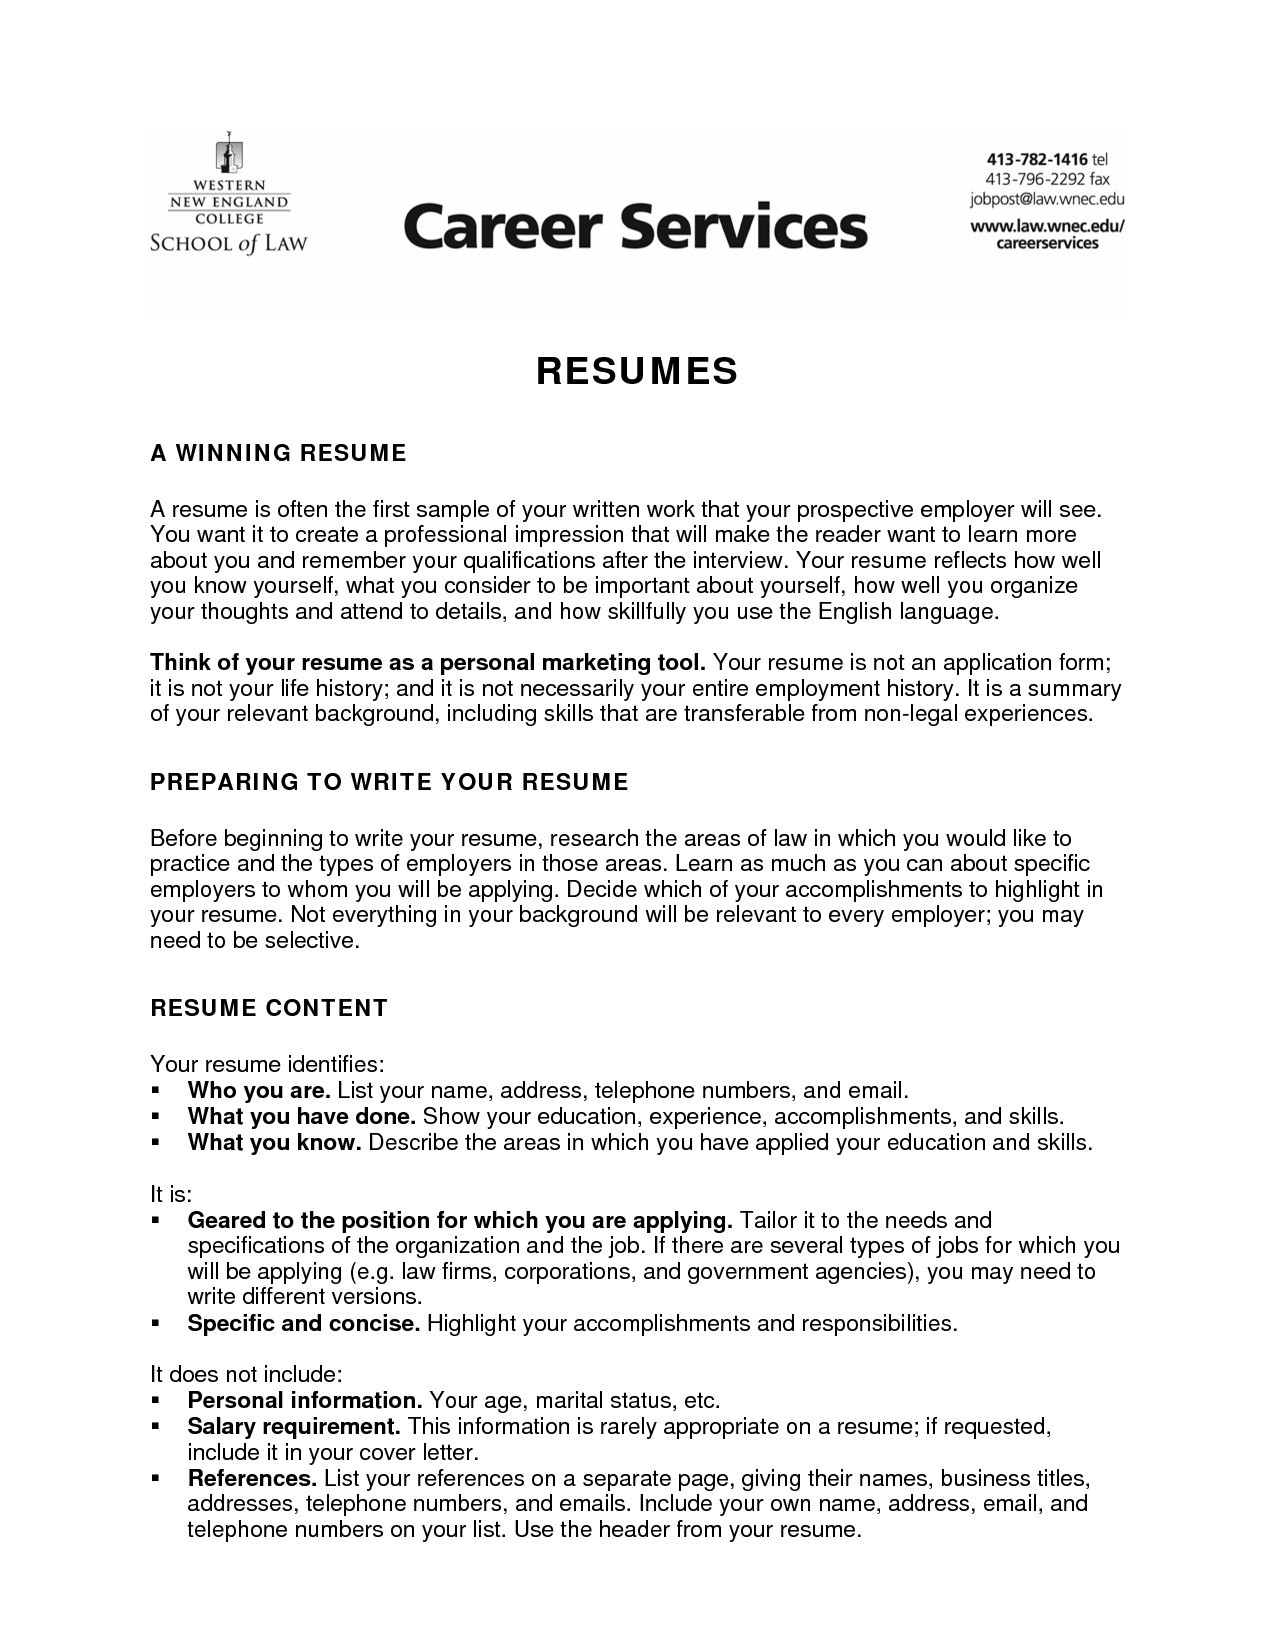 What Does Employer Name Mean On A Resume - 34 Luxury What Does Employer Name Mean A Resume